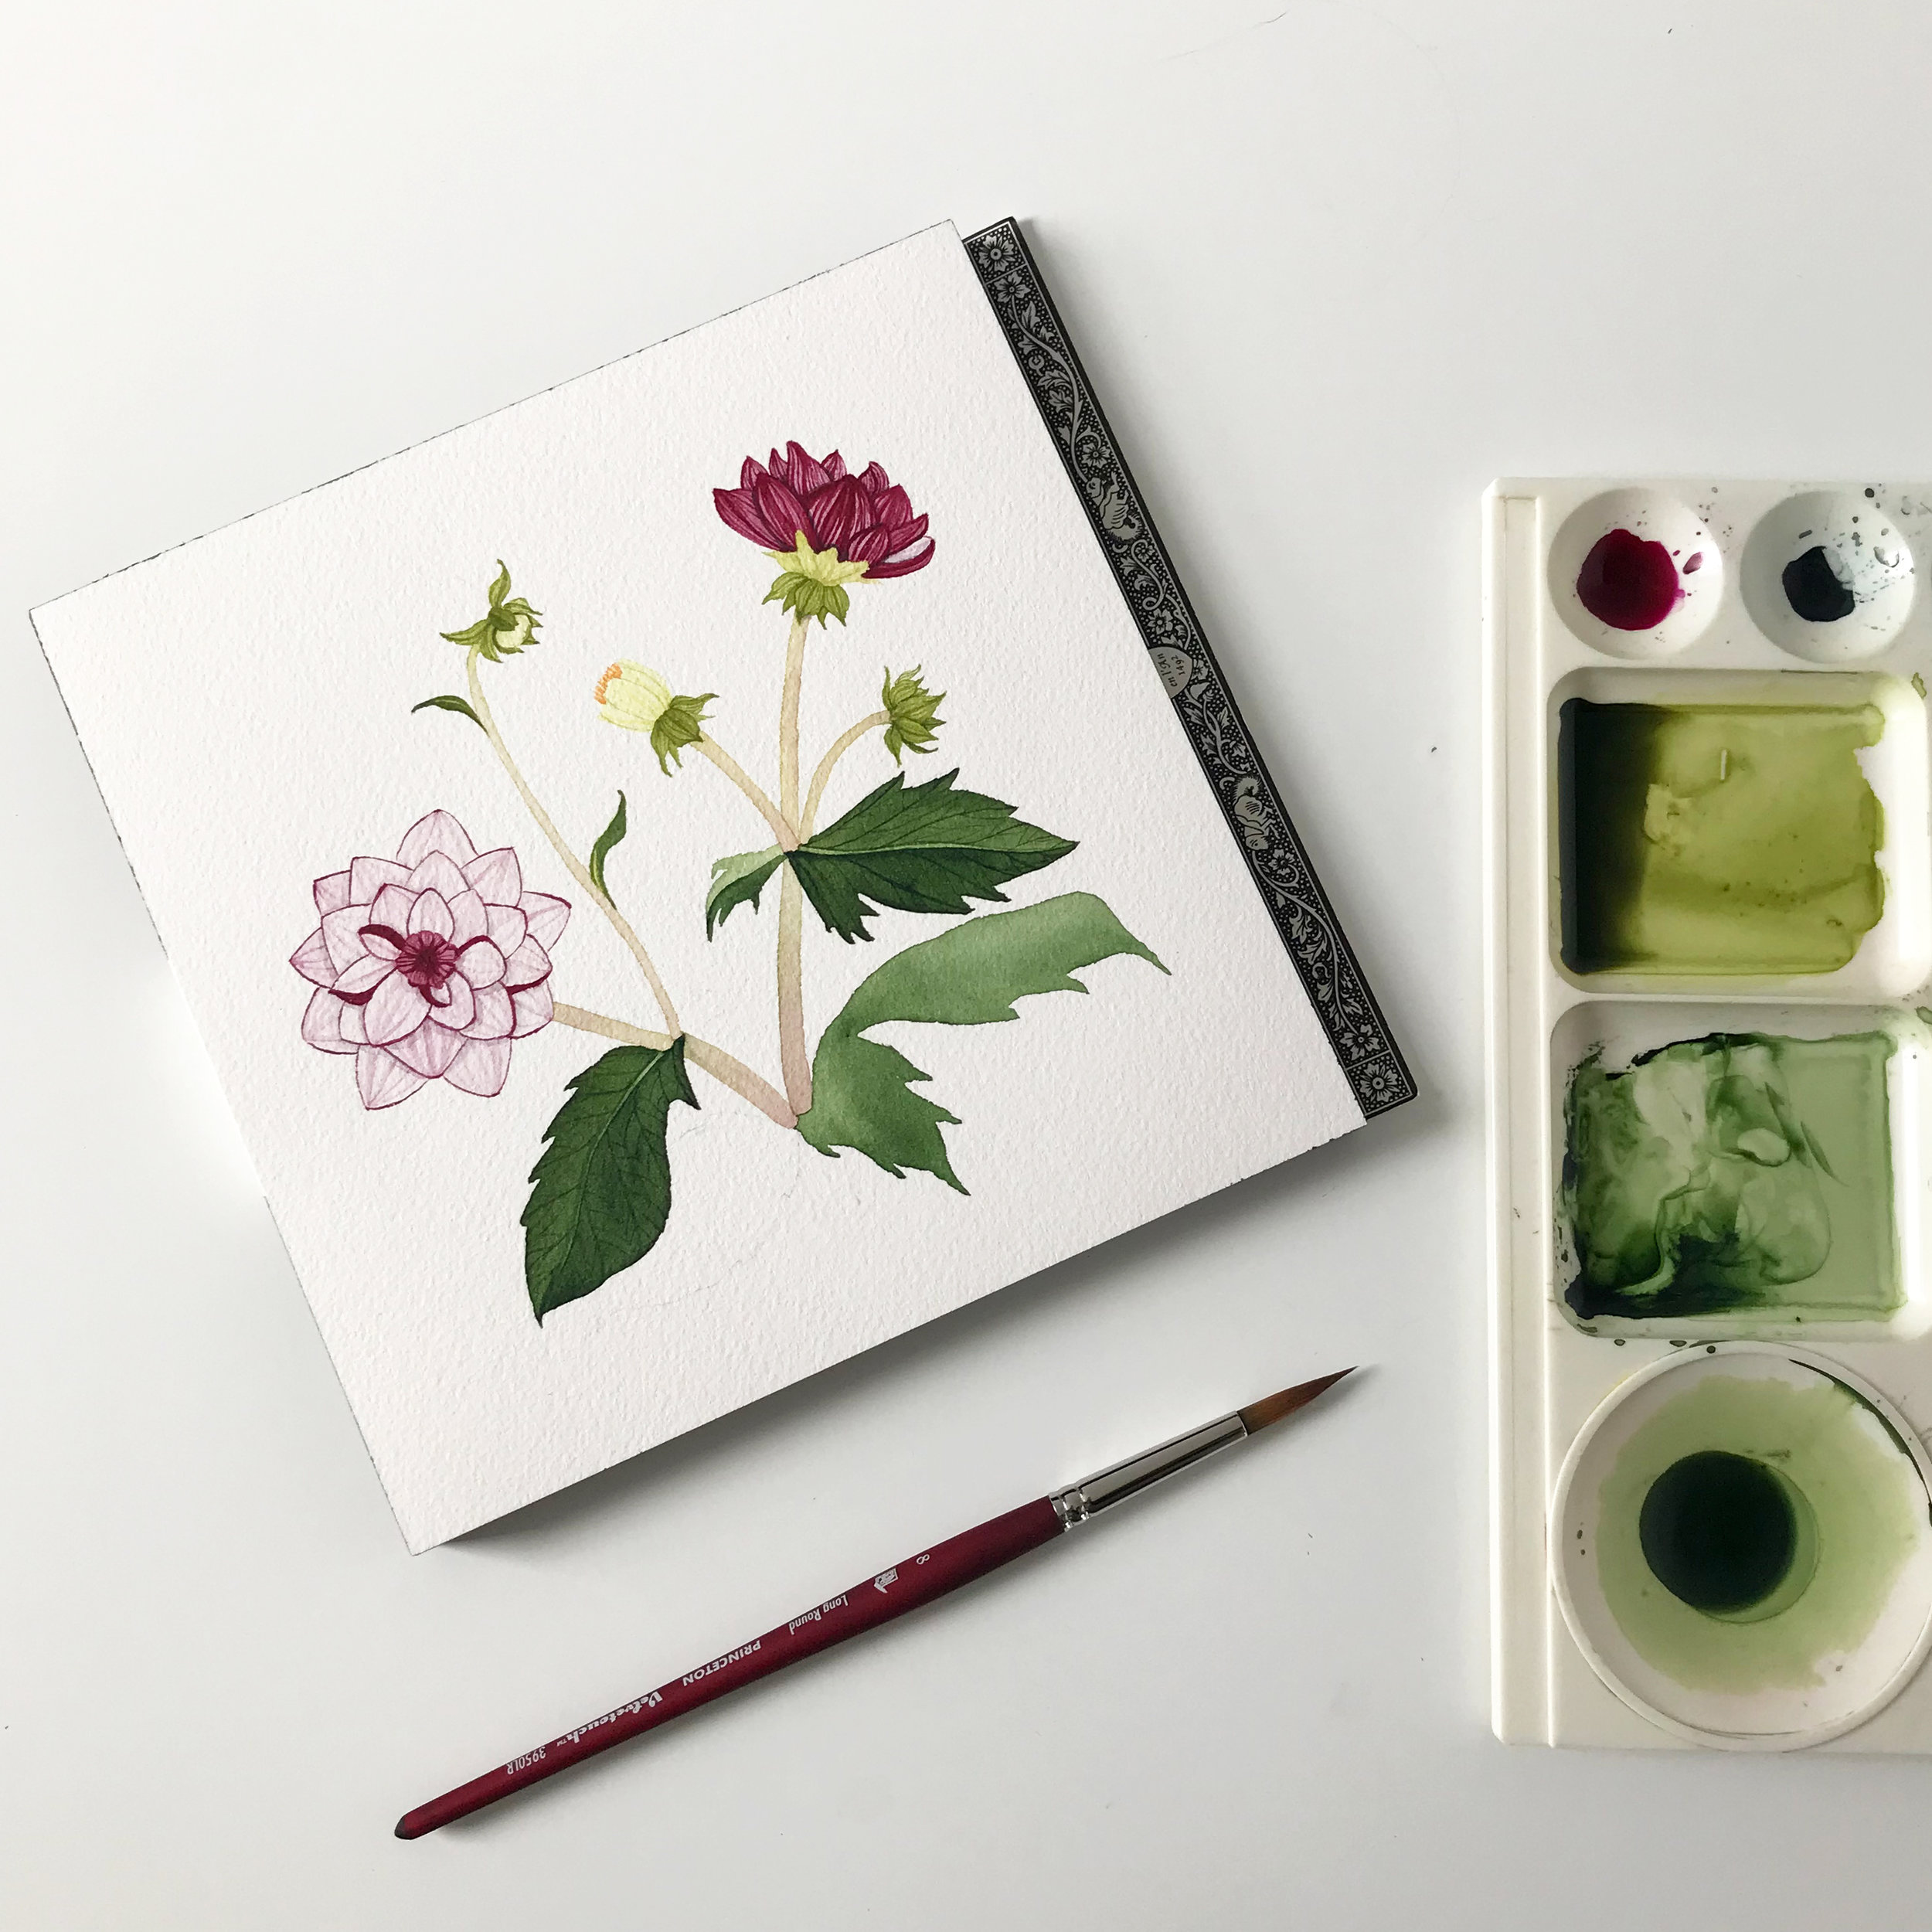 A Watercolor Painting of Dahlias in Progress in My Studio